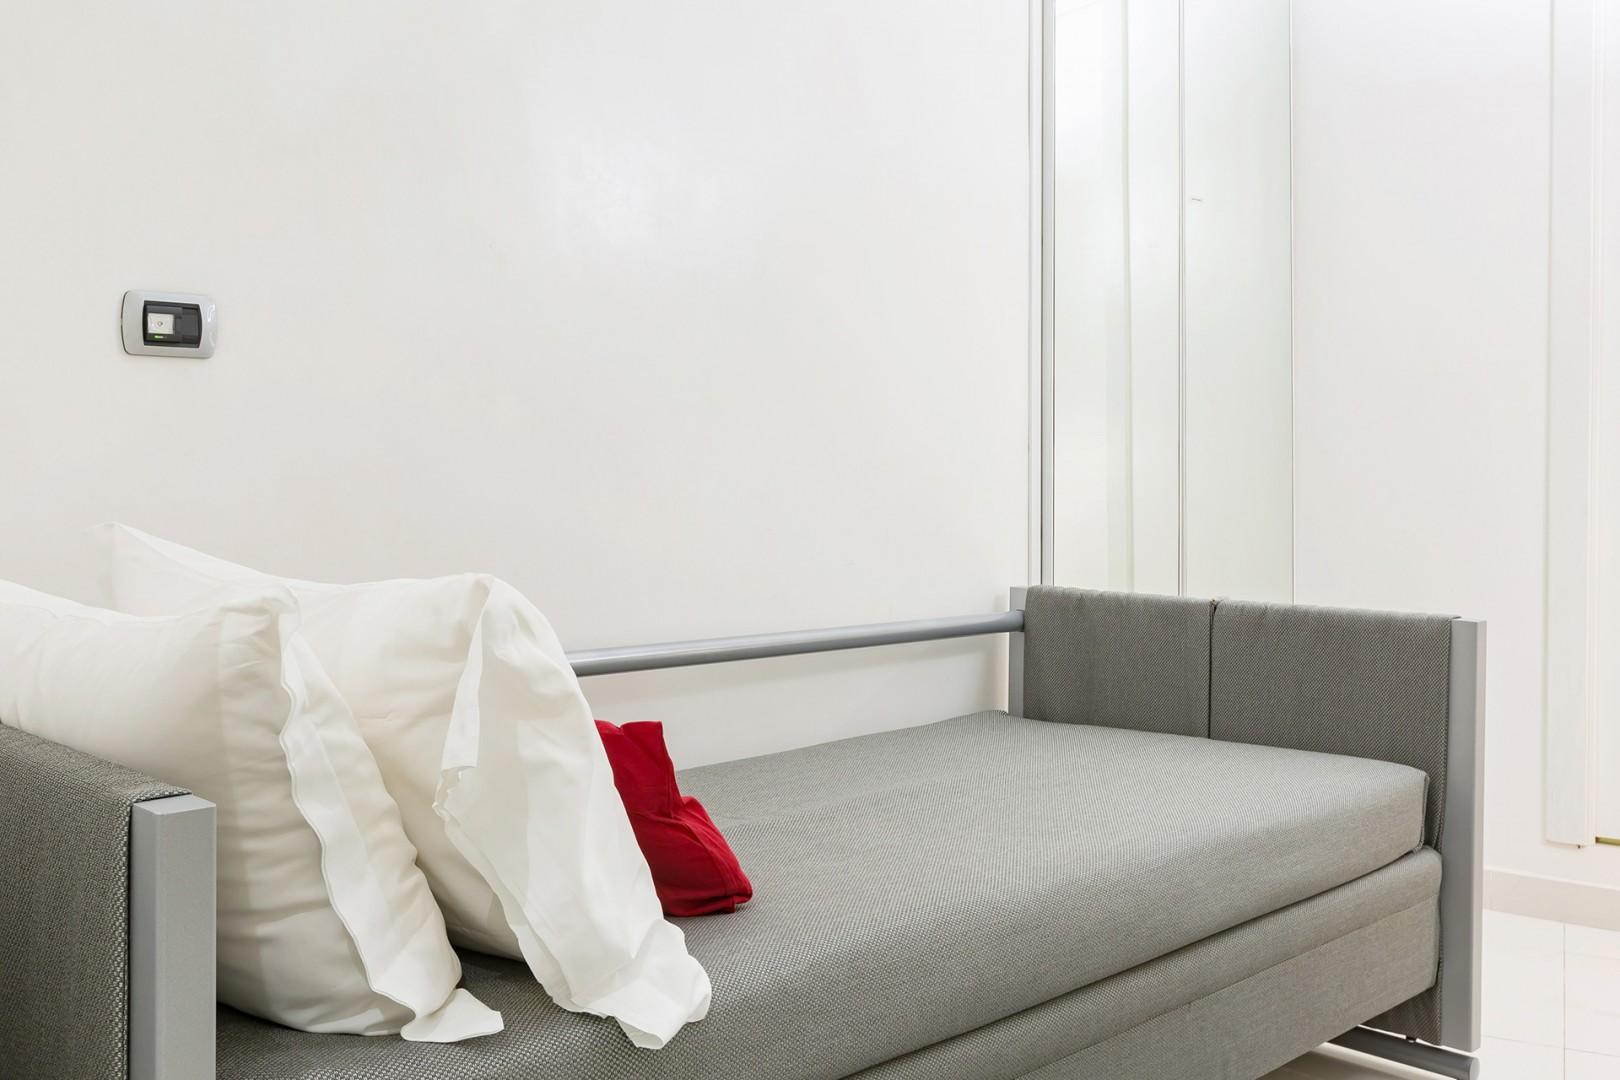 This is the single bed configuration in bedroom 2.